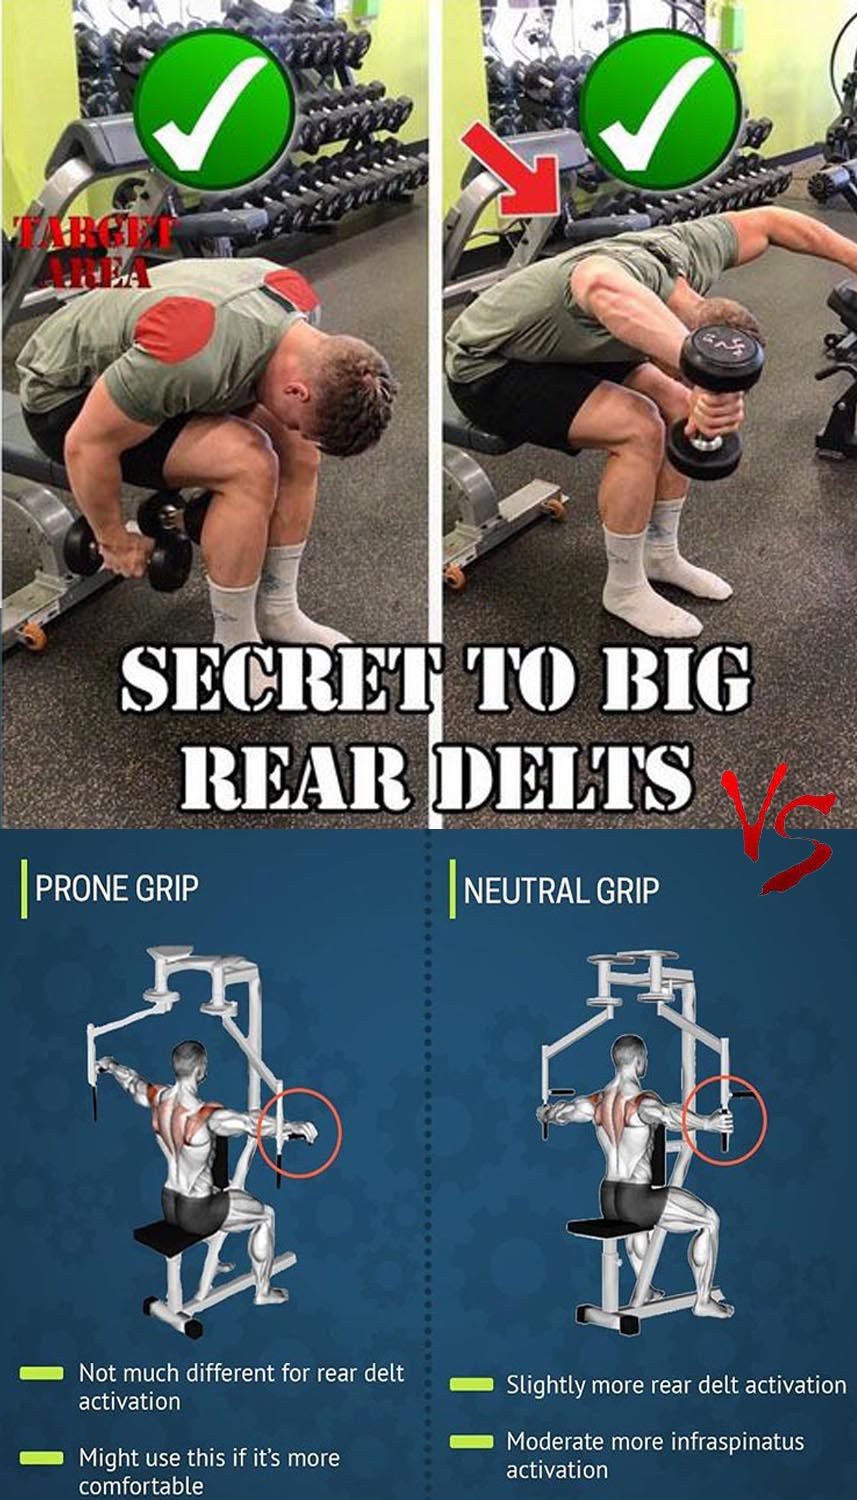 Rear delts: raises